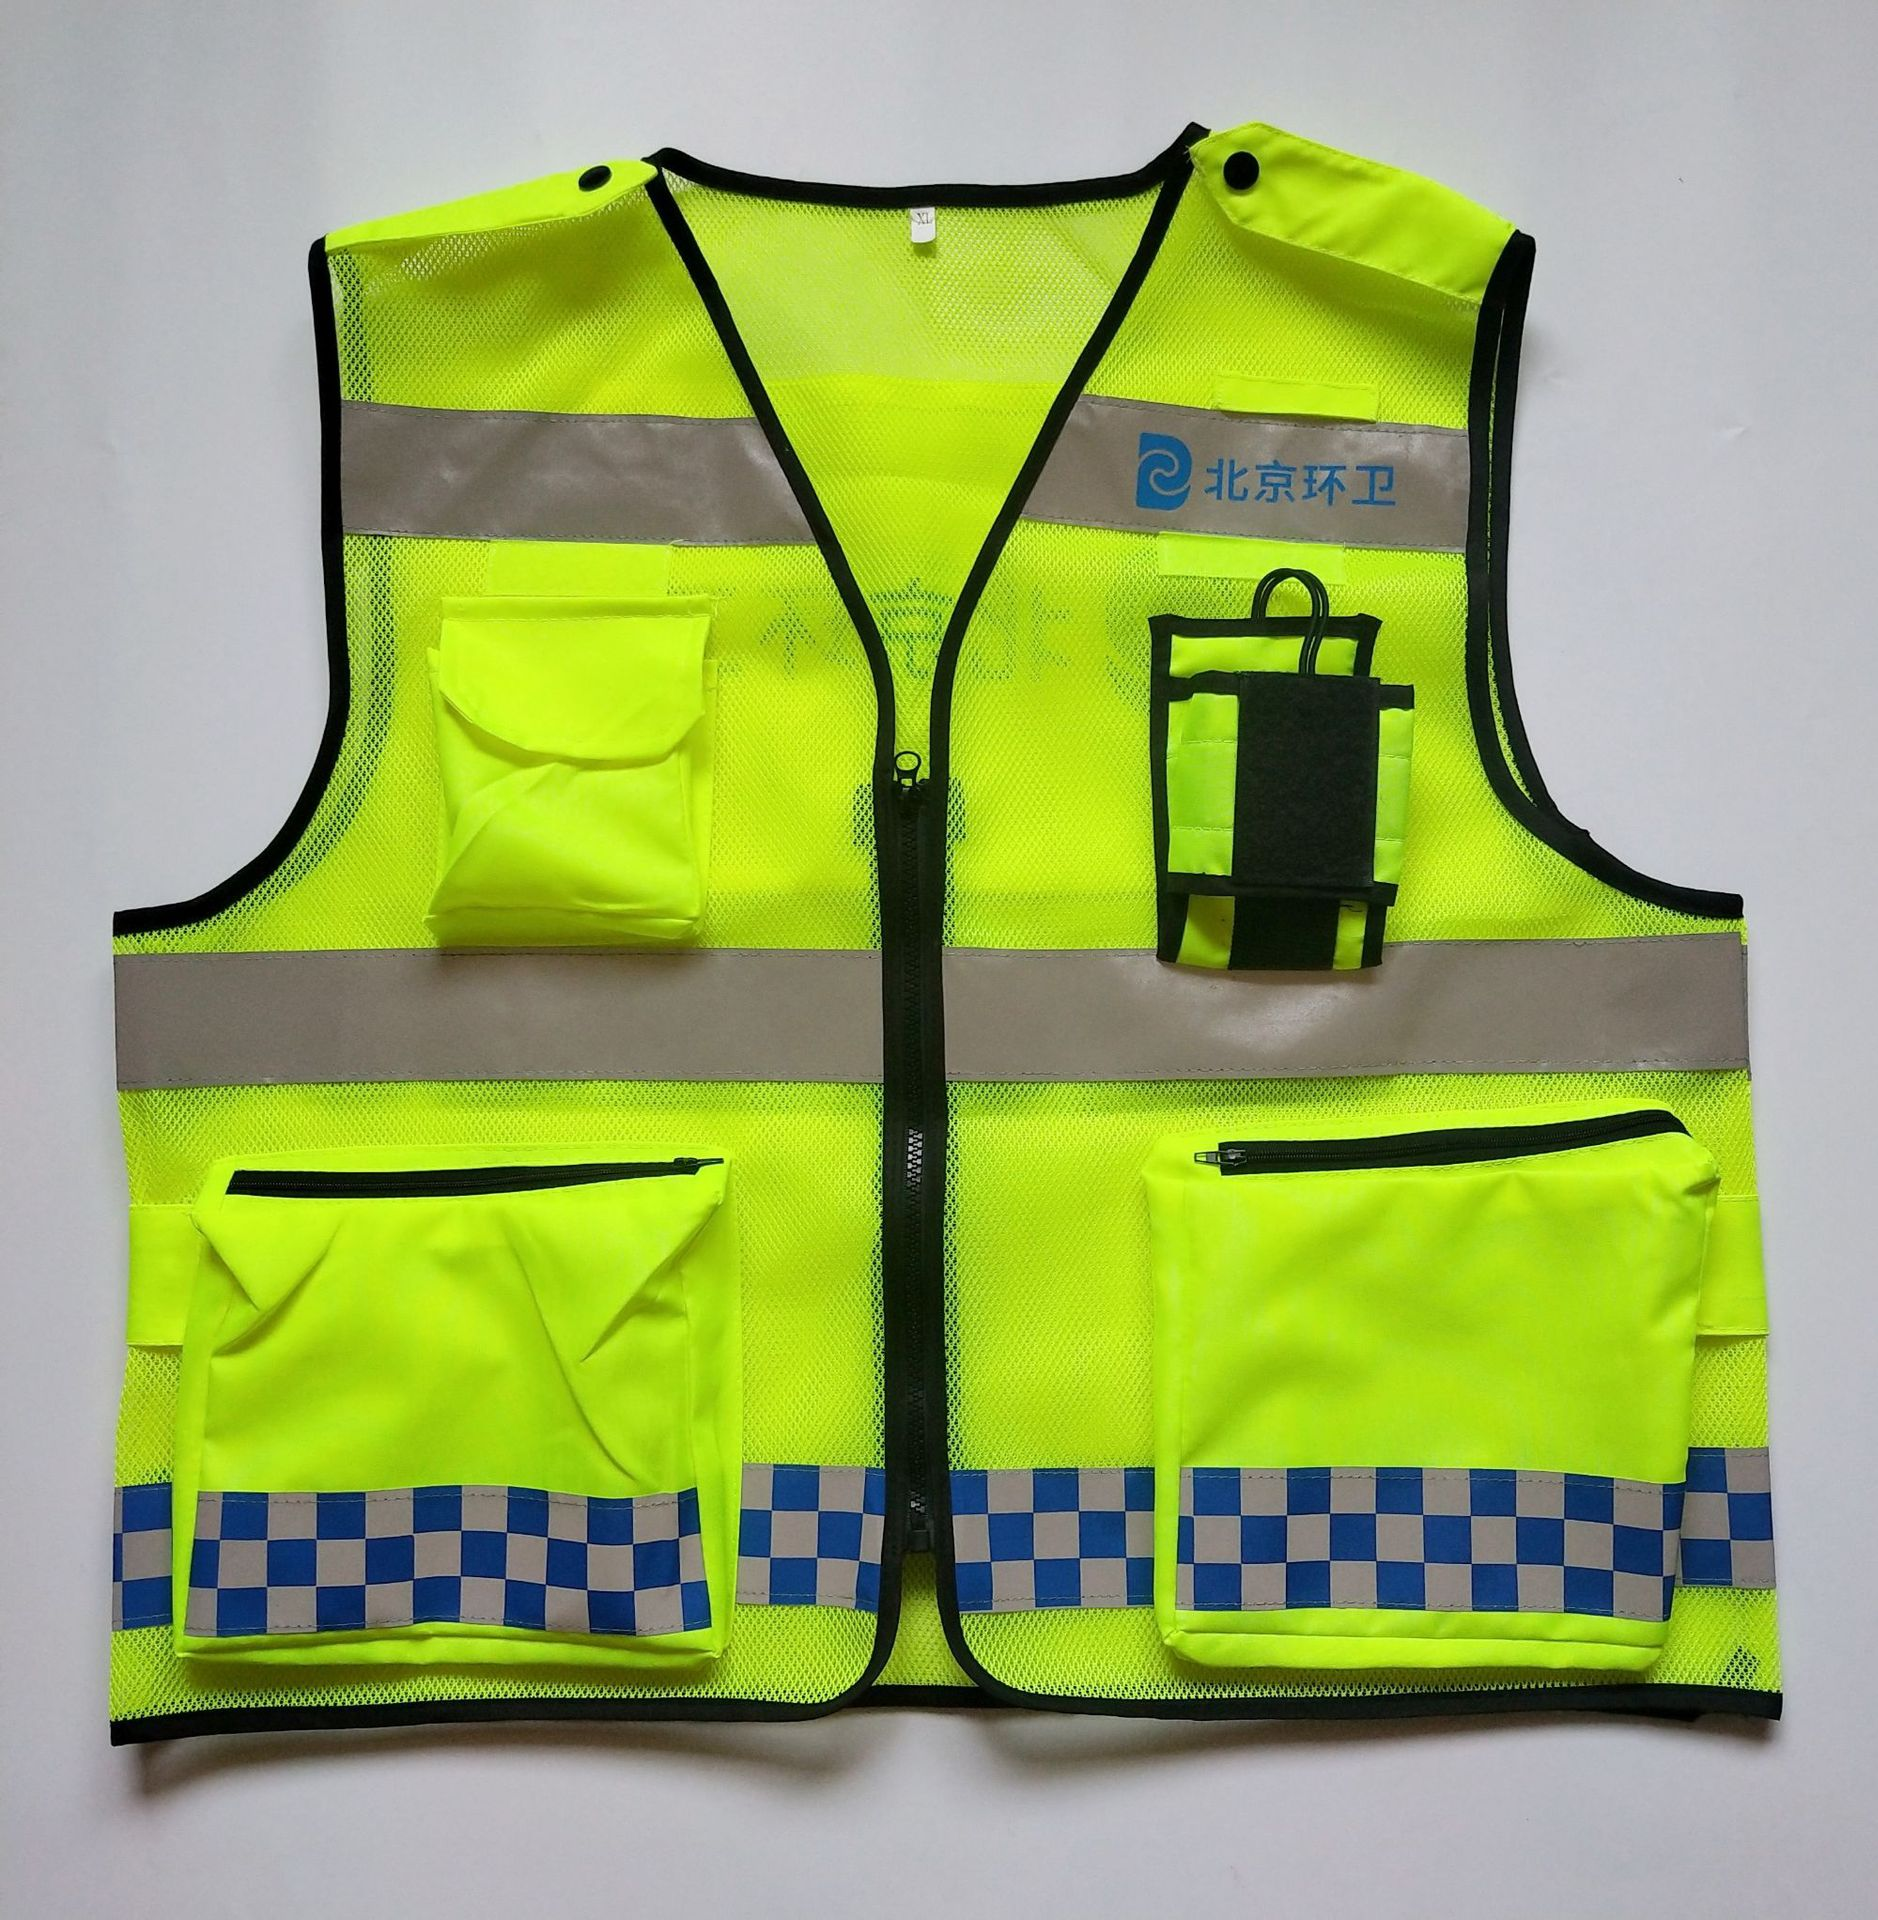 Reflective Mesh Safety Vest High Visibility Multi Pockets Breathable Workwear Construction Work